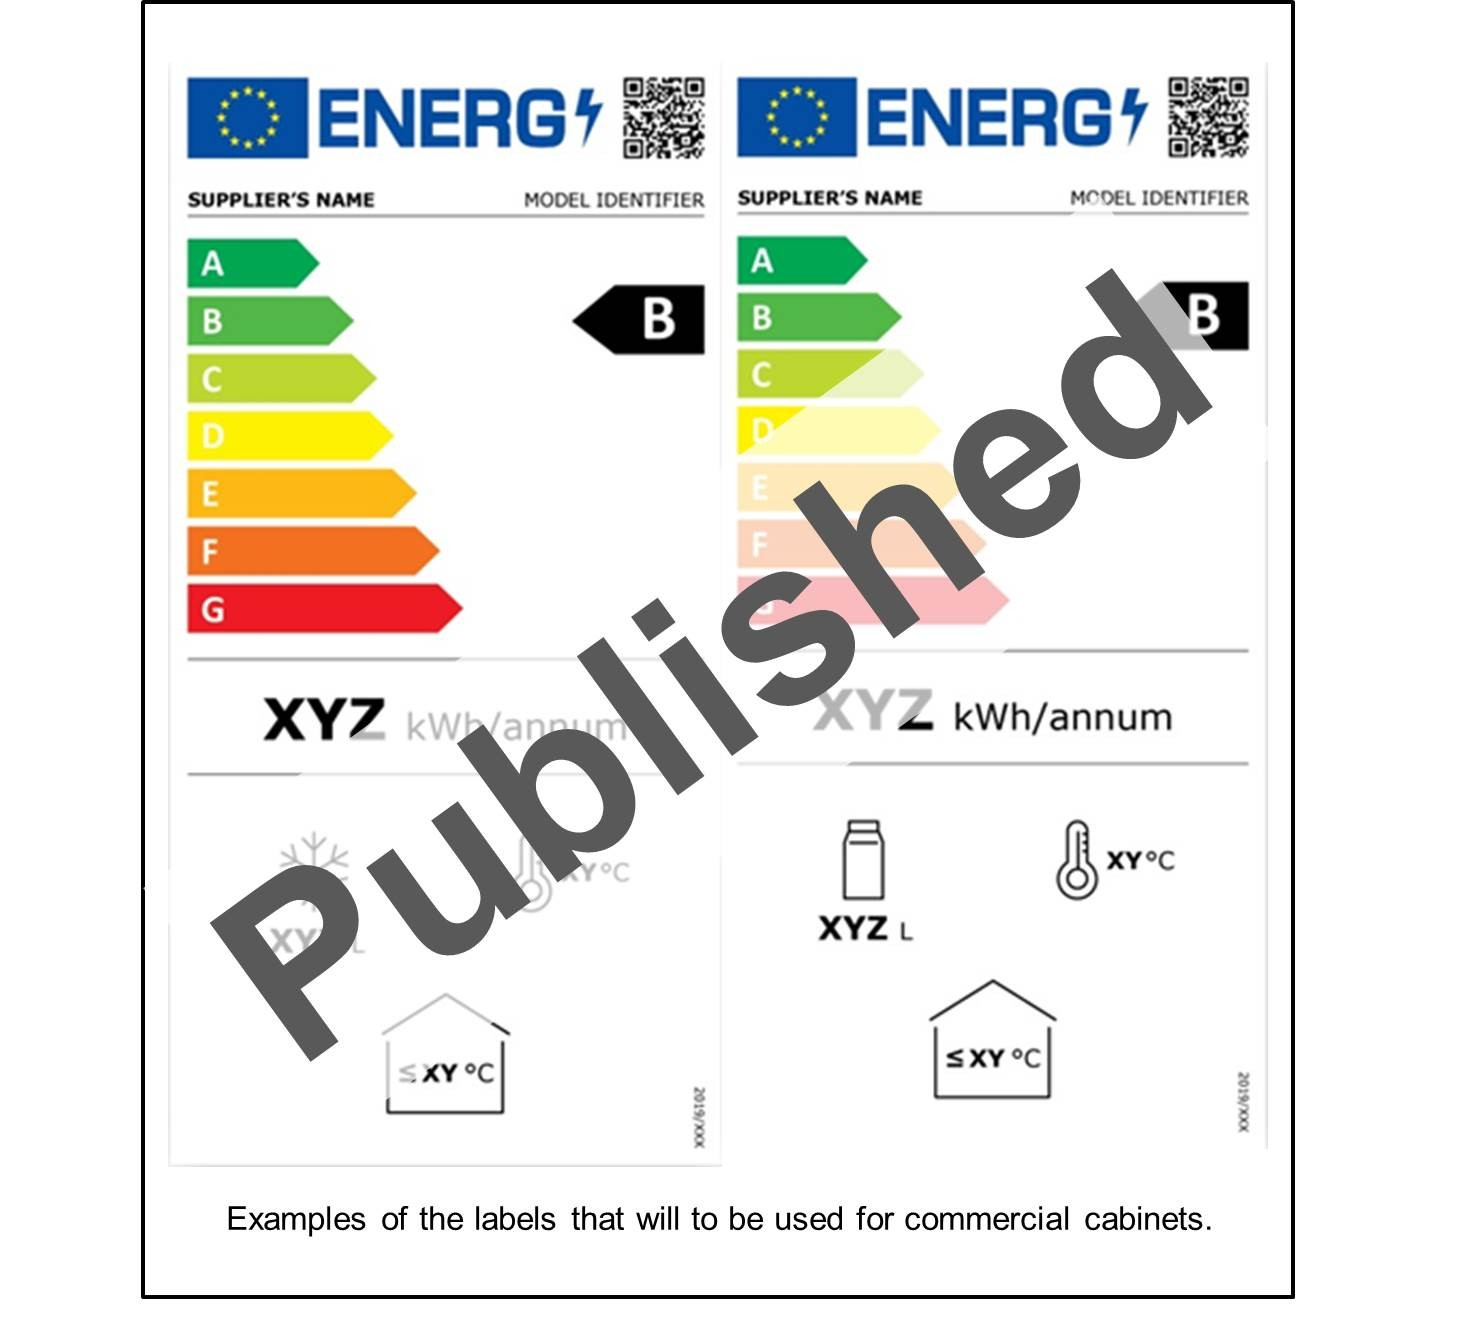 Final eco-design and labelling regulations for refrigerating appliances published